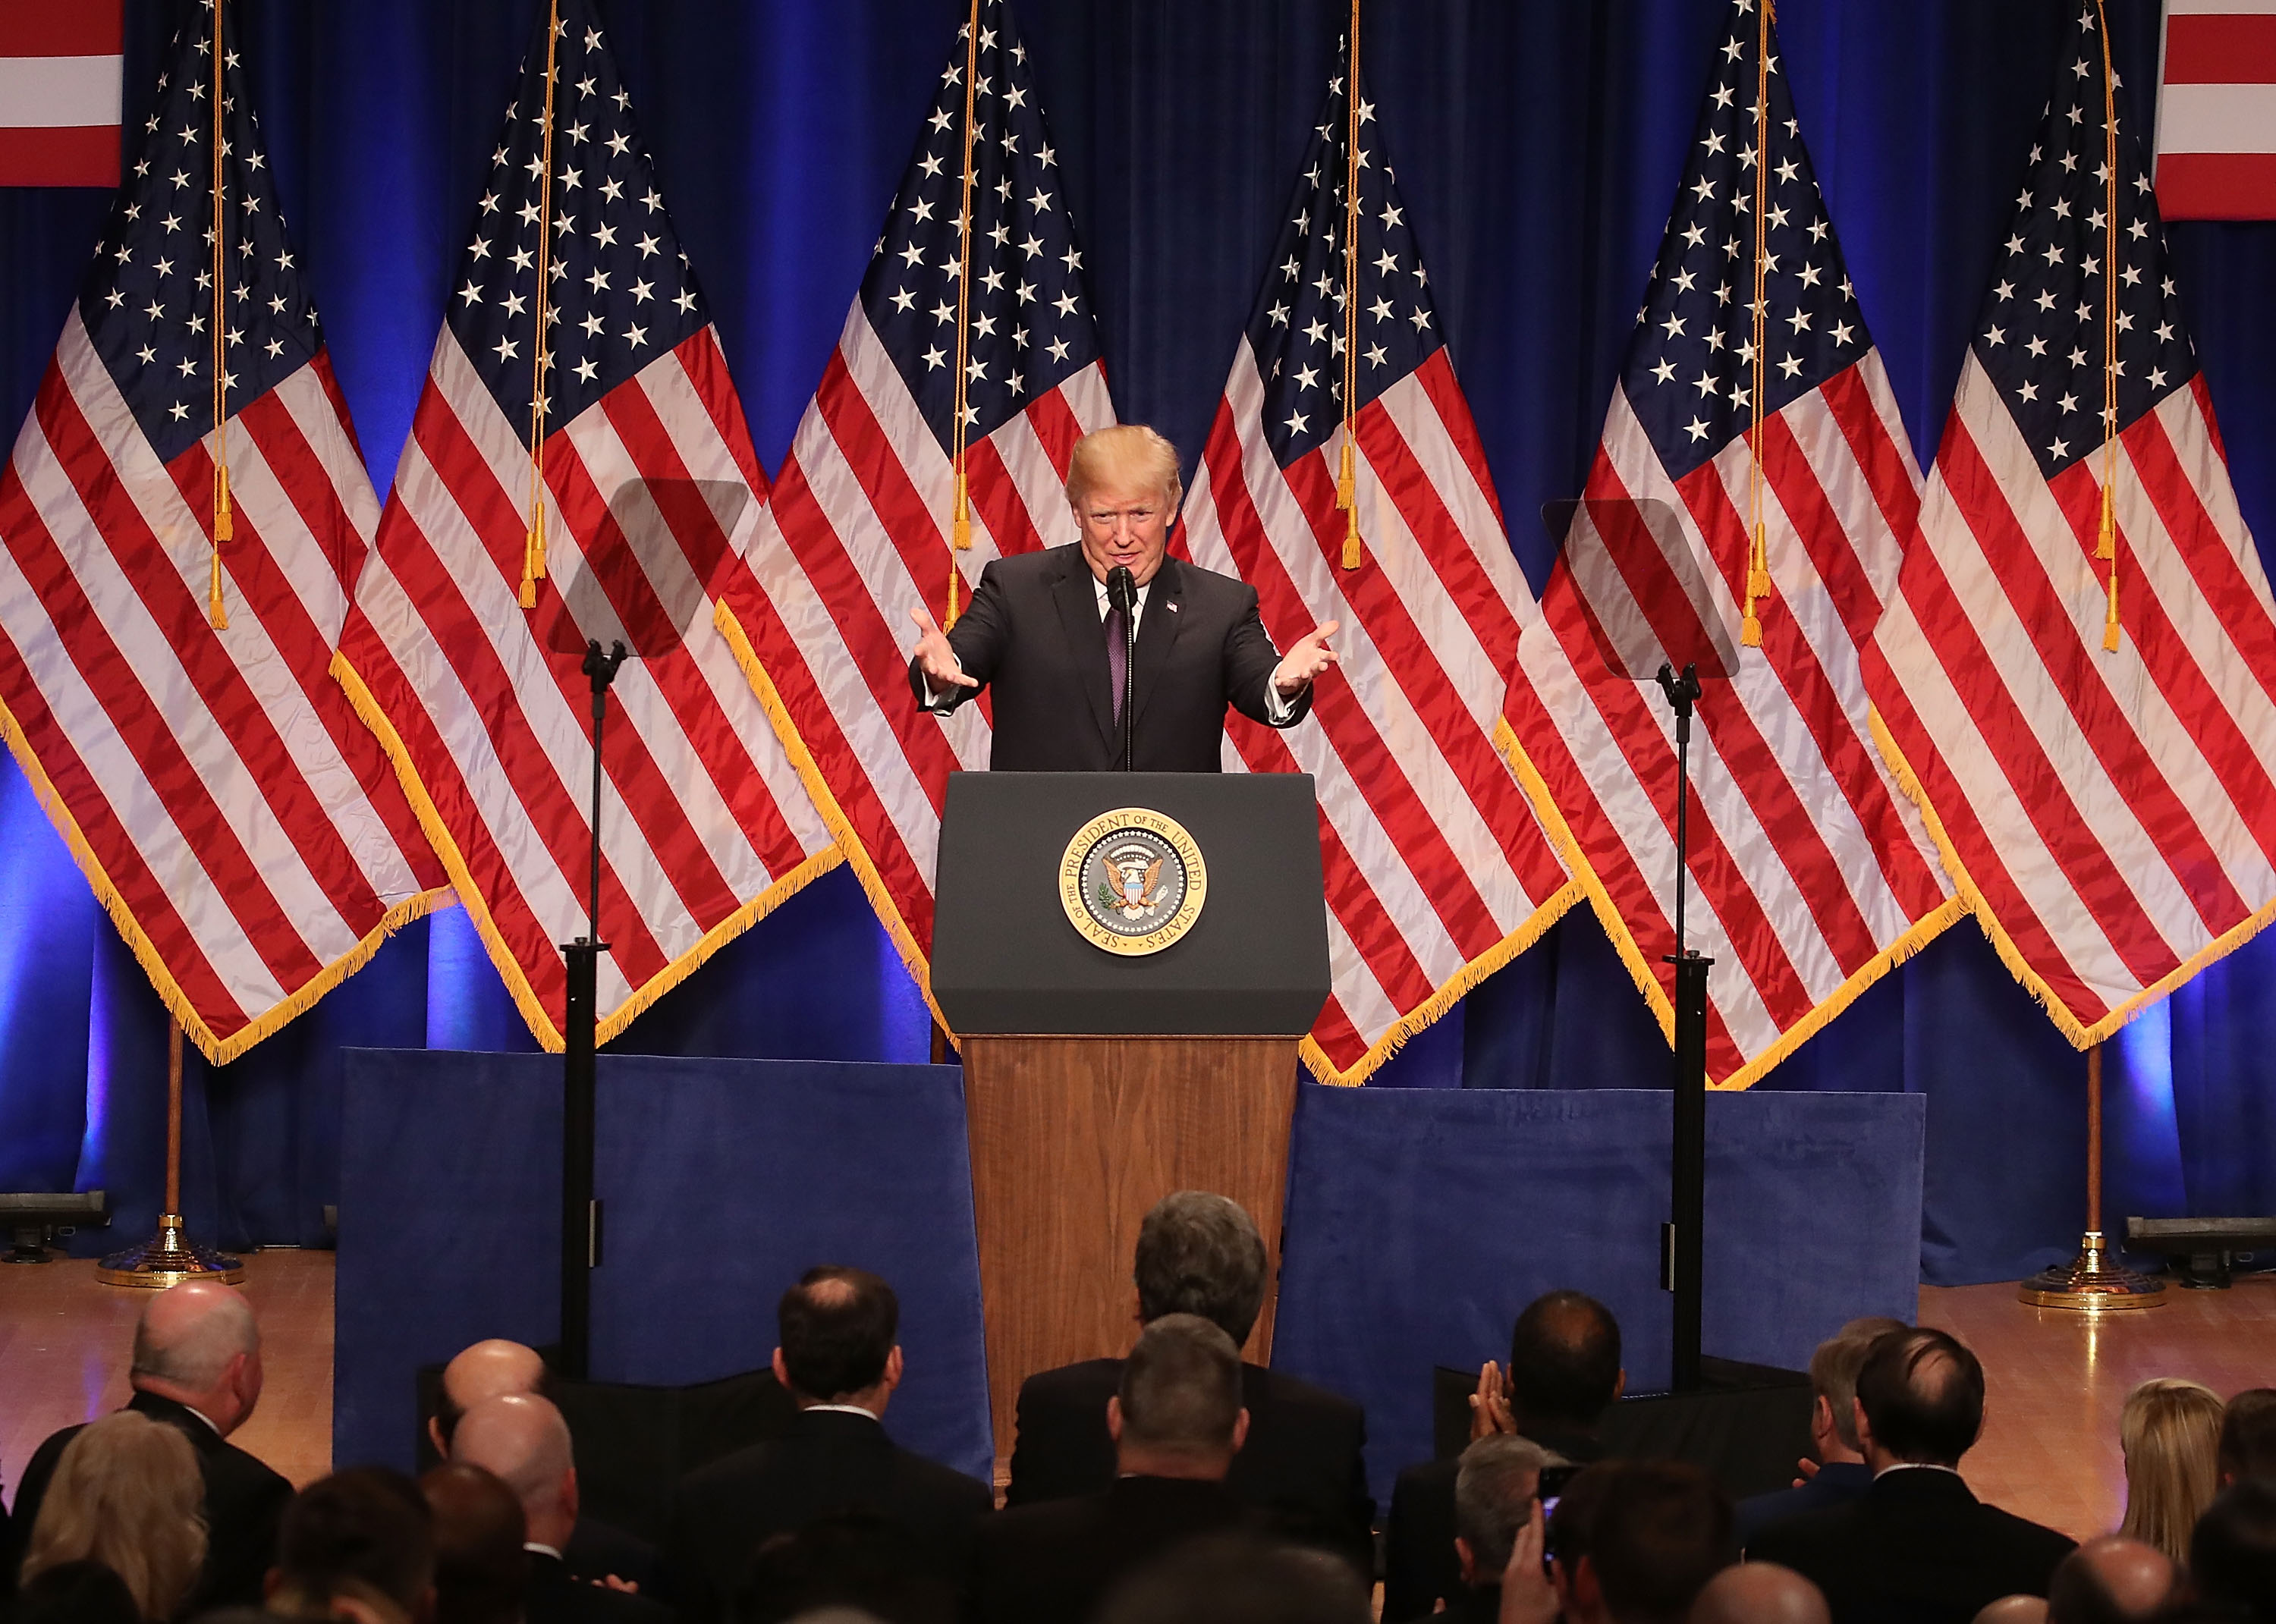 President Trump Speaks On National Security Strategy At The Ronald Reagan Amphiheater